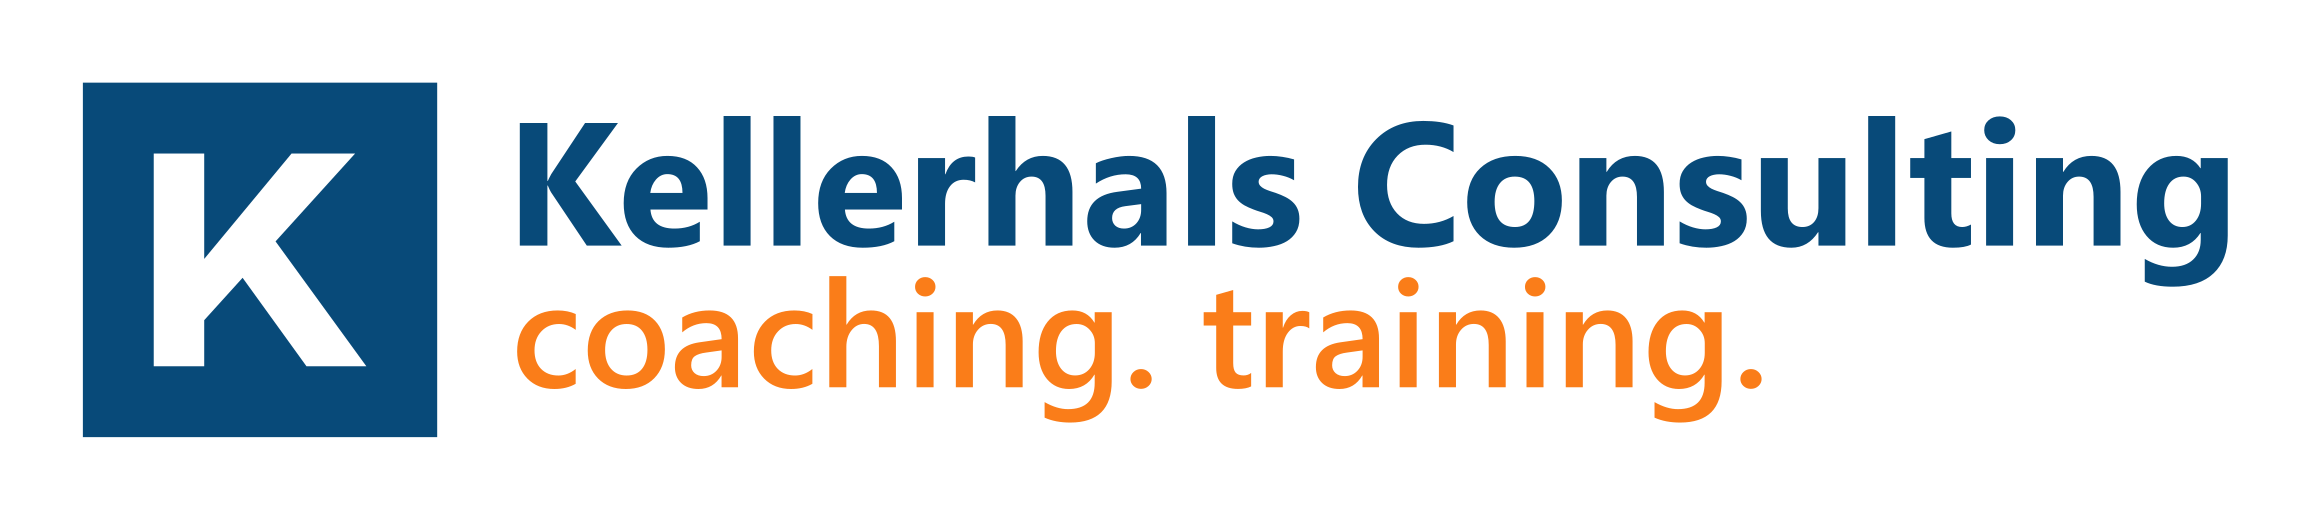 Kellerhals Consulting - Coaching. Training.